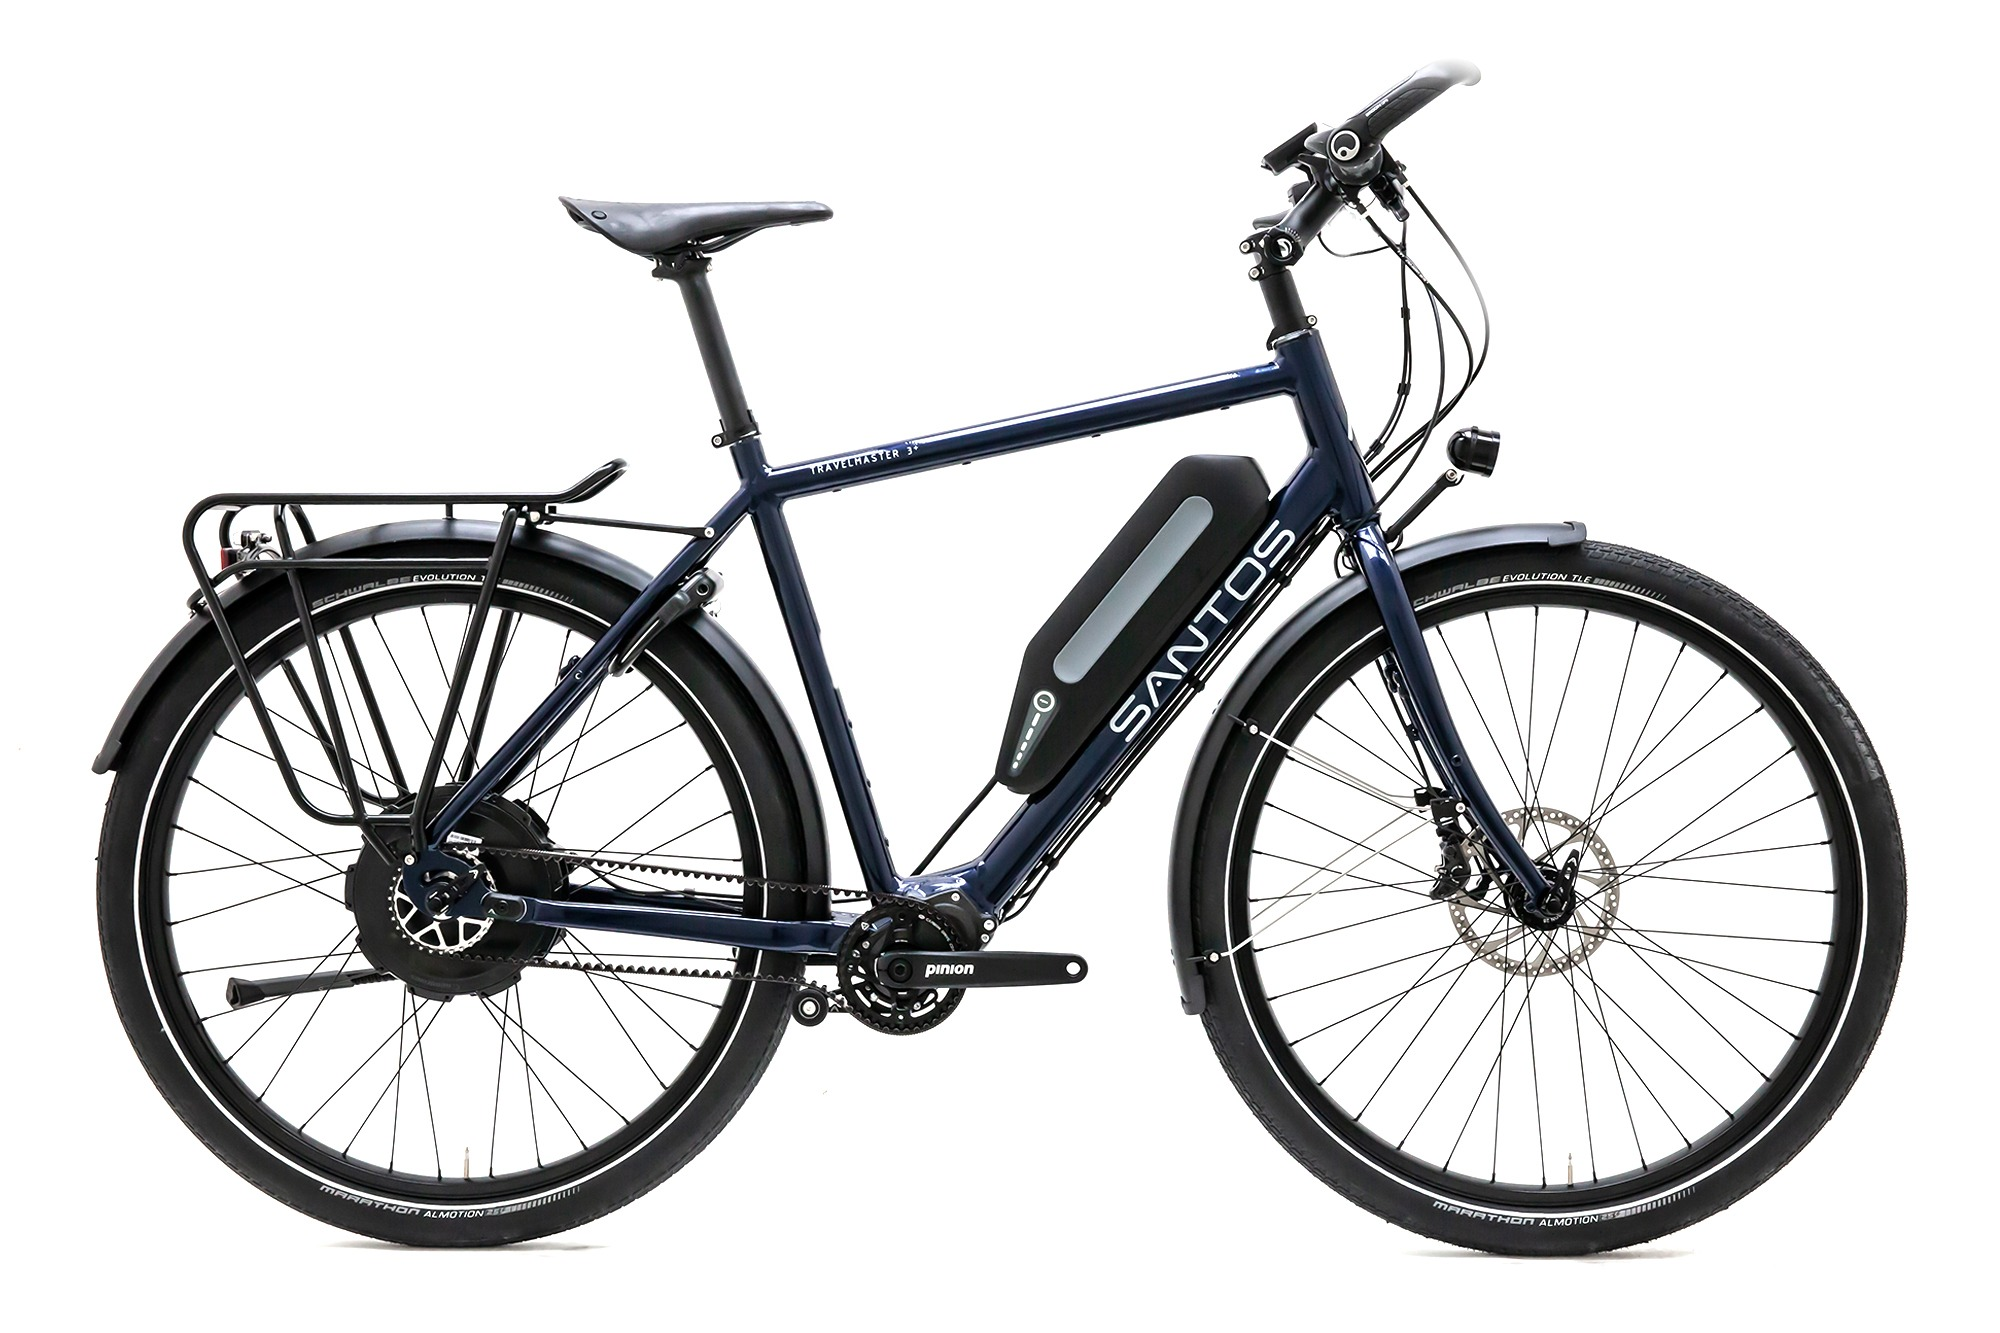 Santos e-bike Travelmaster 3 GS Neodrive